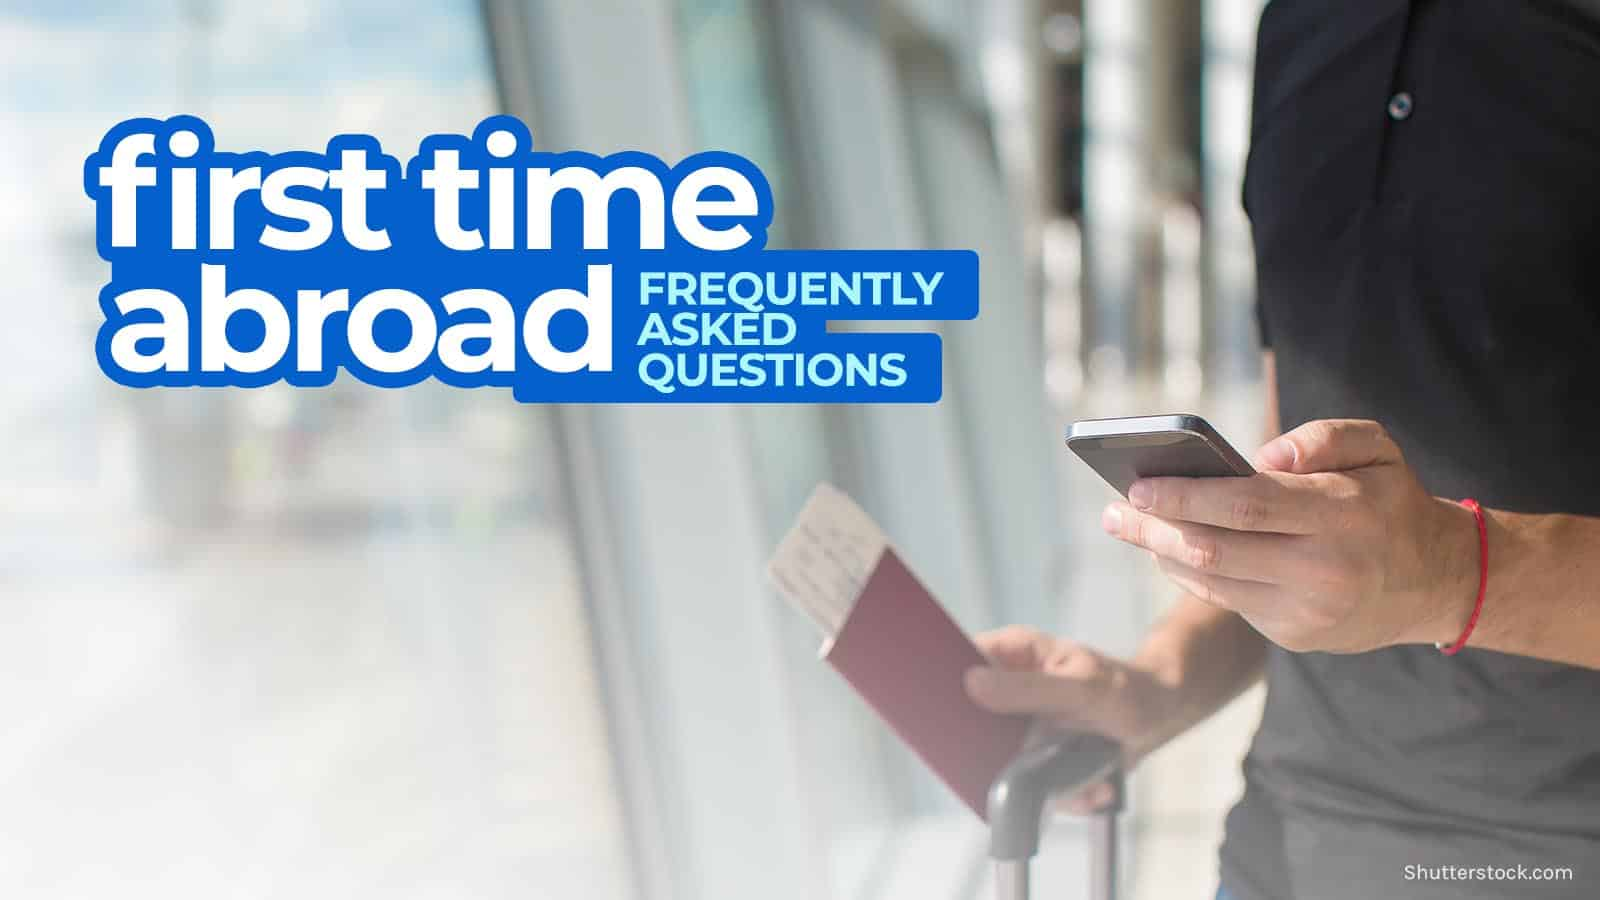 FIRST TIME ABROAD: Airport Tips & Frequently Asked Questions 2020